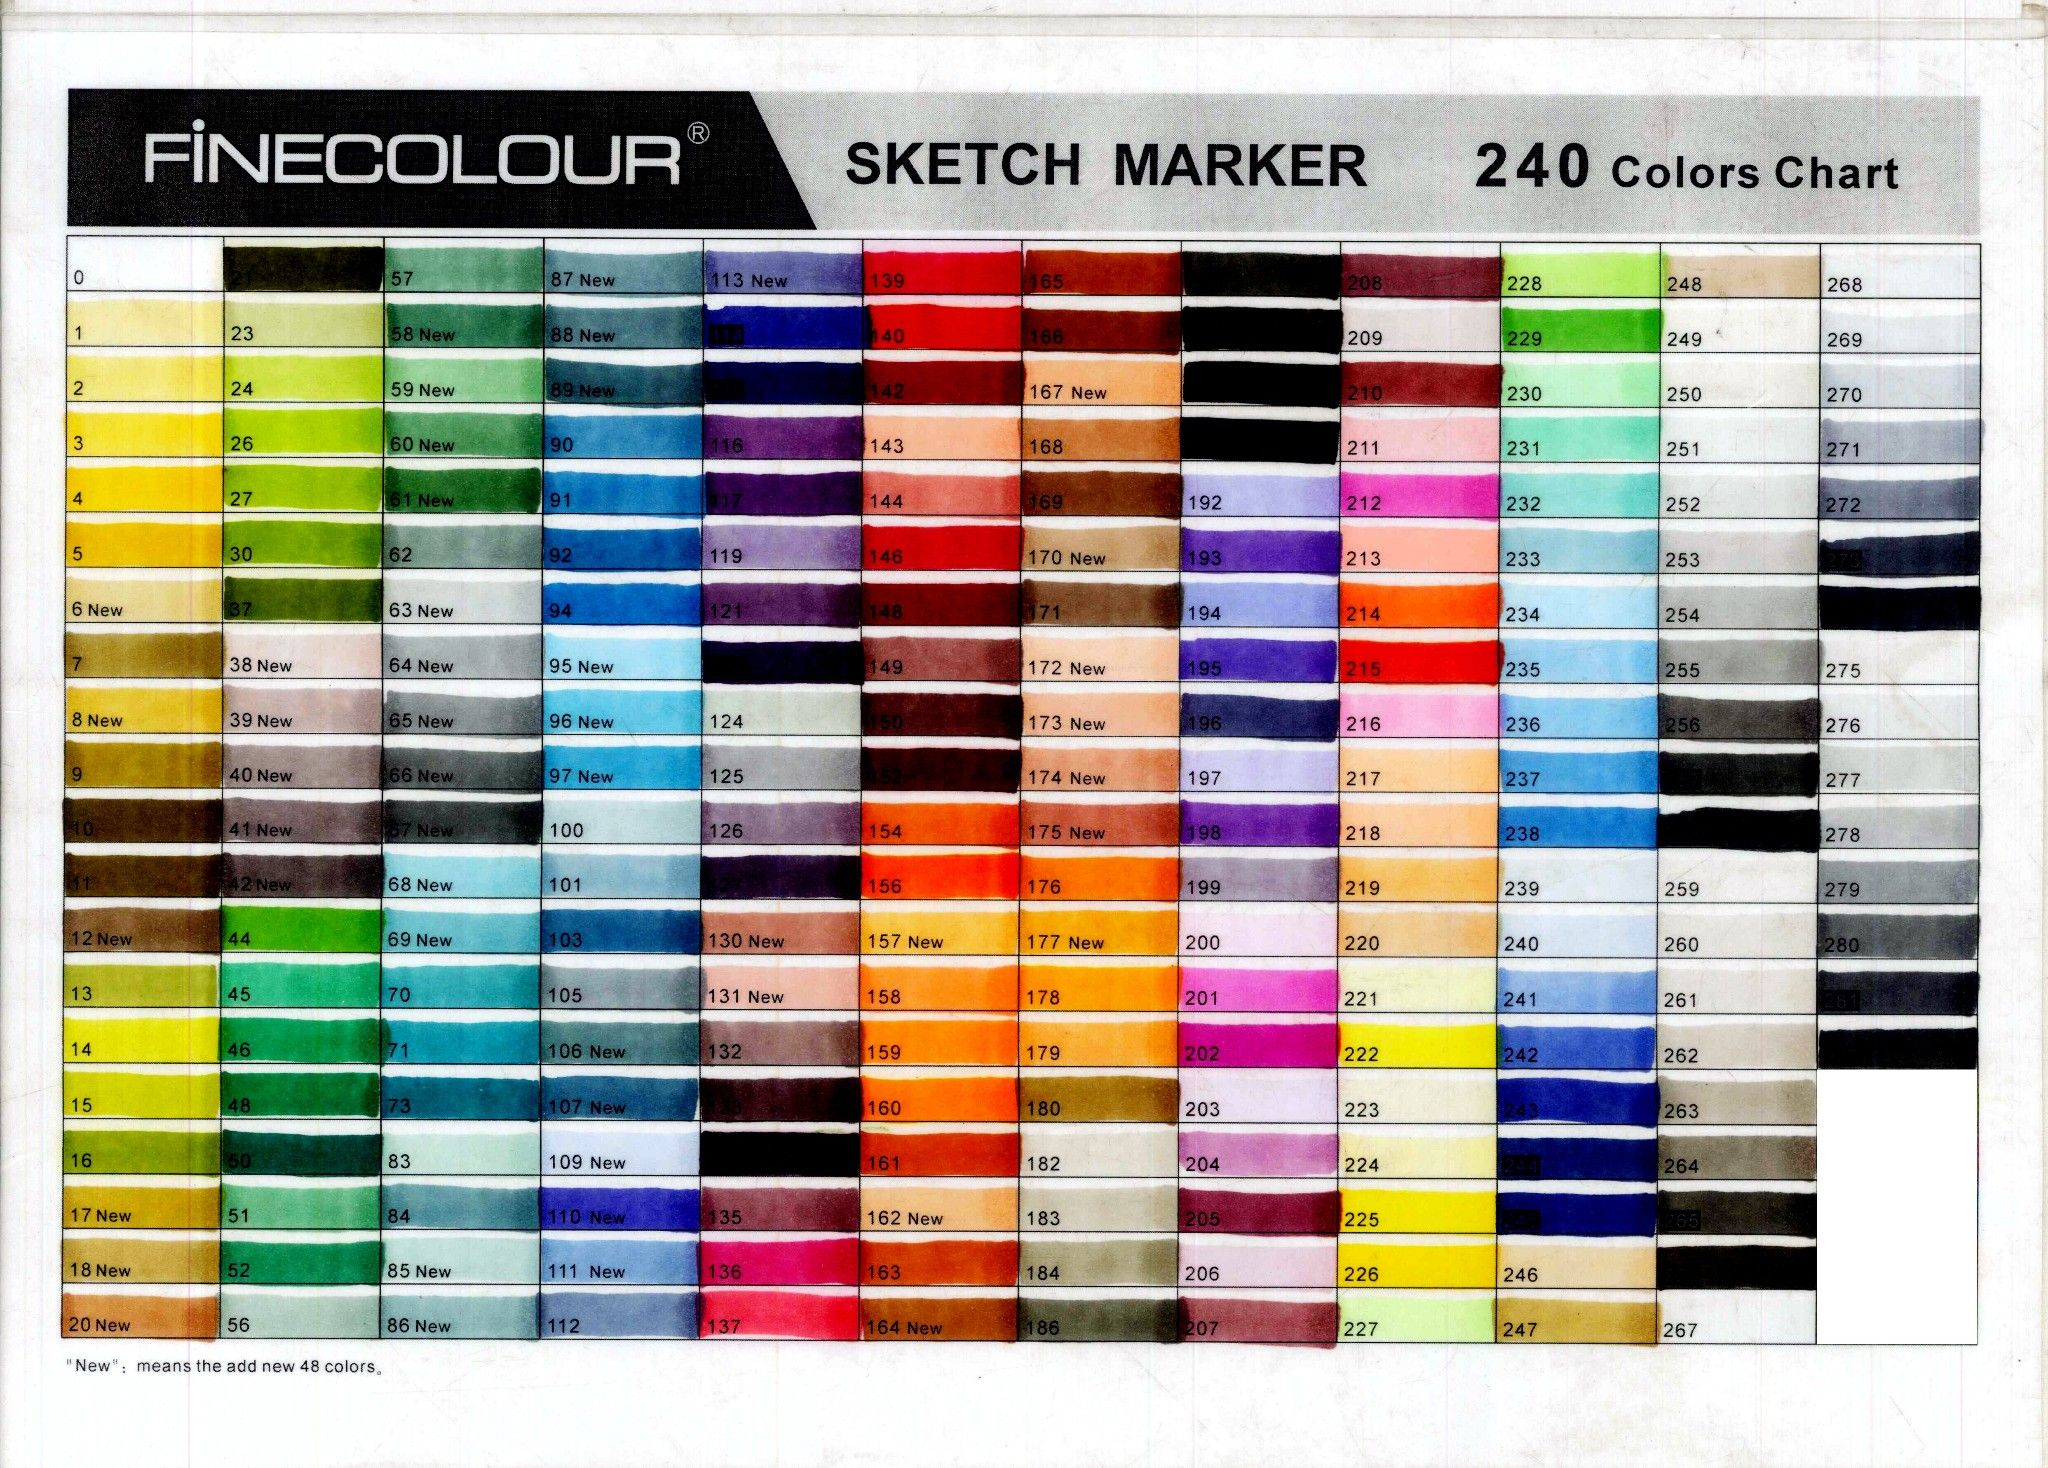 Finecolour 240 Colors Chart Reference Sketch Markers